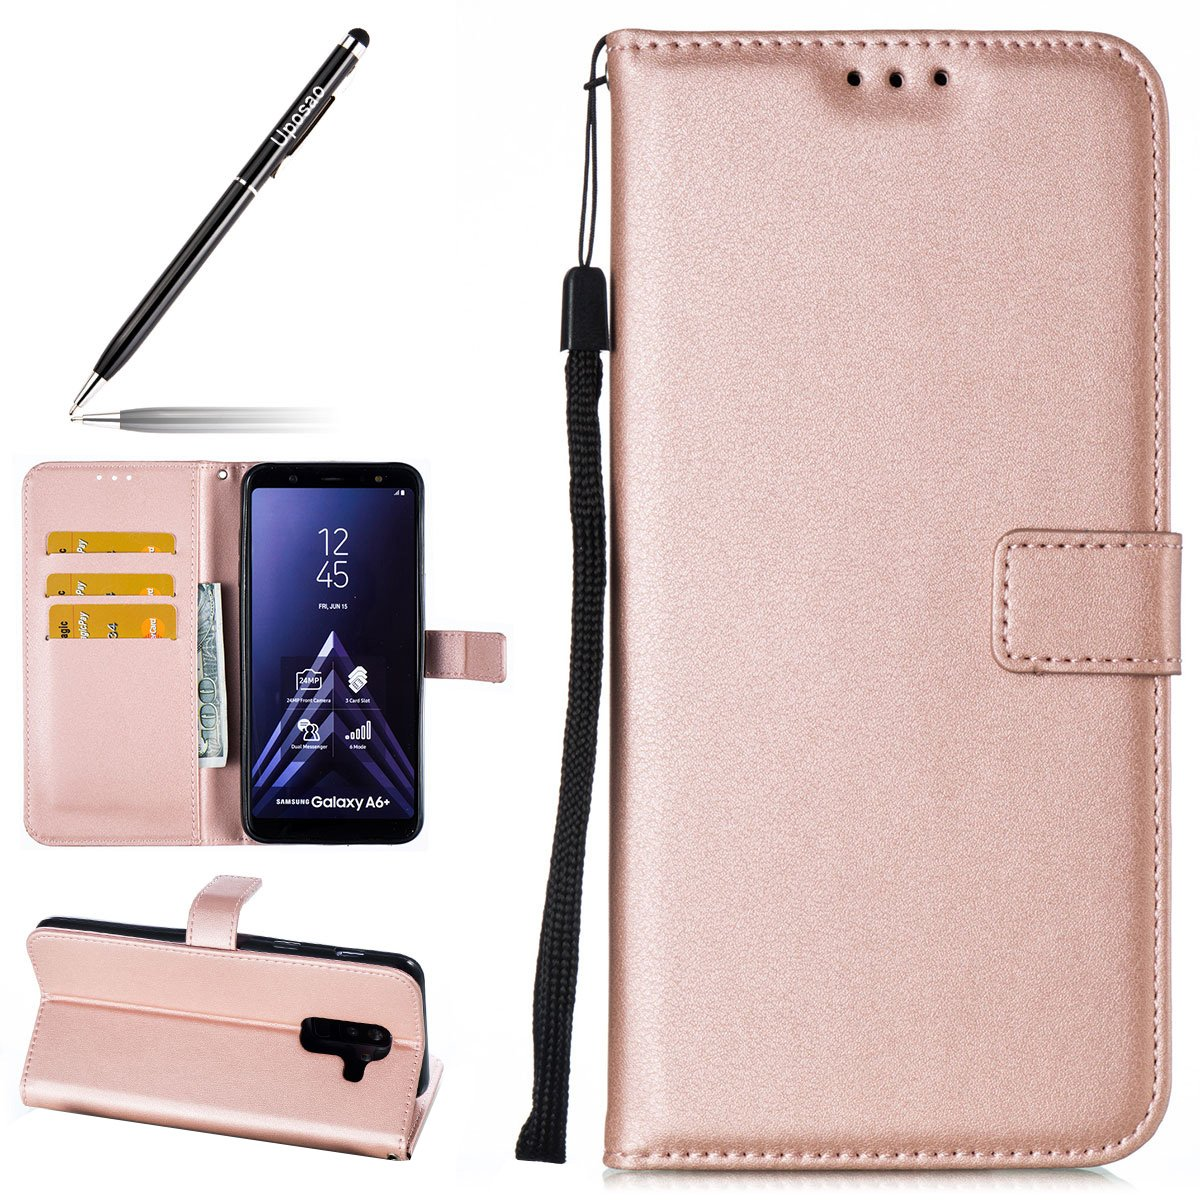 Coque pour Samsung Galaxy A6 Plus 2018 Samsung Galaxy A6 Plus 2018 Rose Gold Uposao PYHT00027531